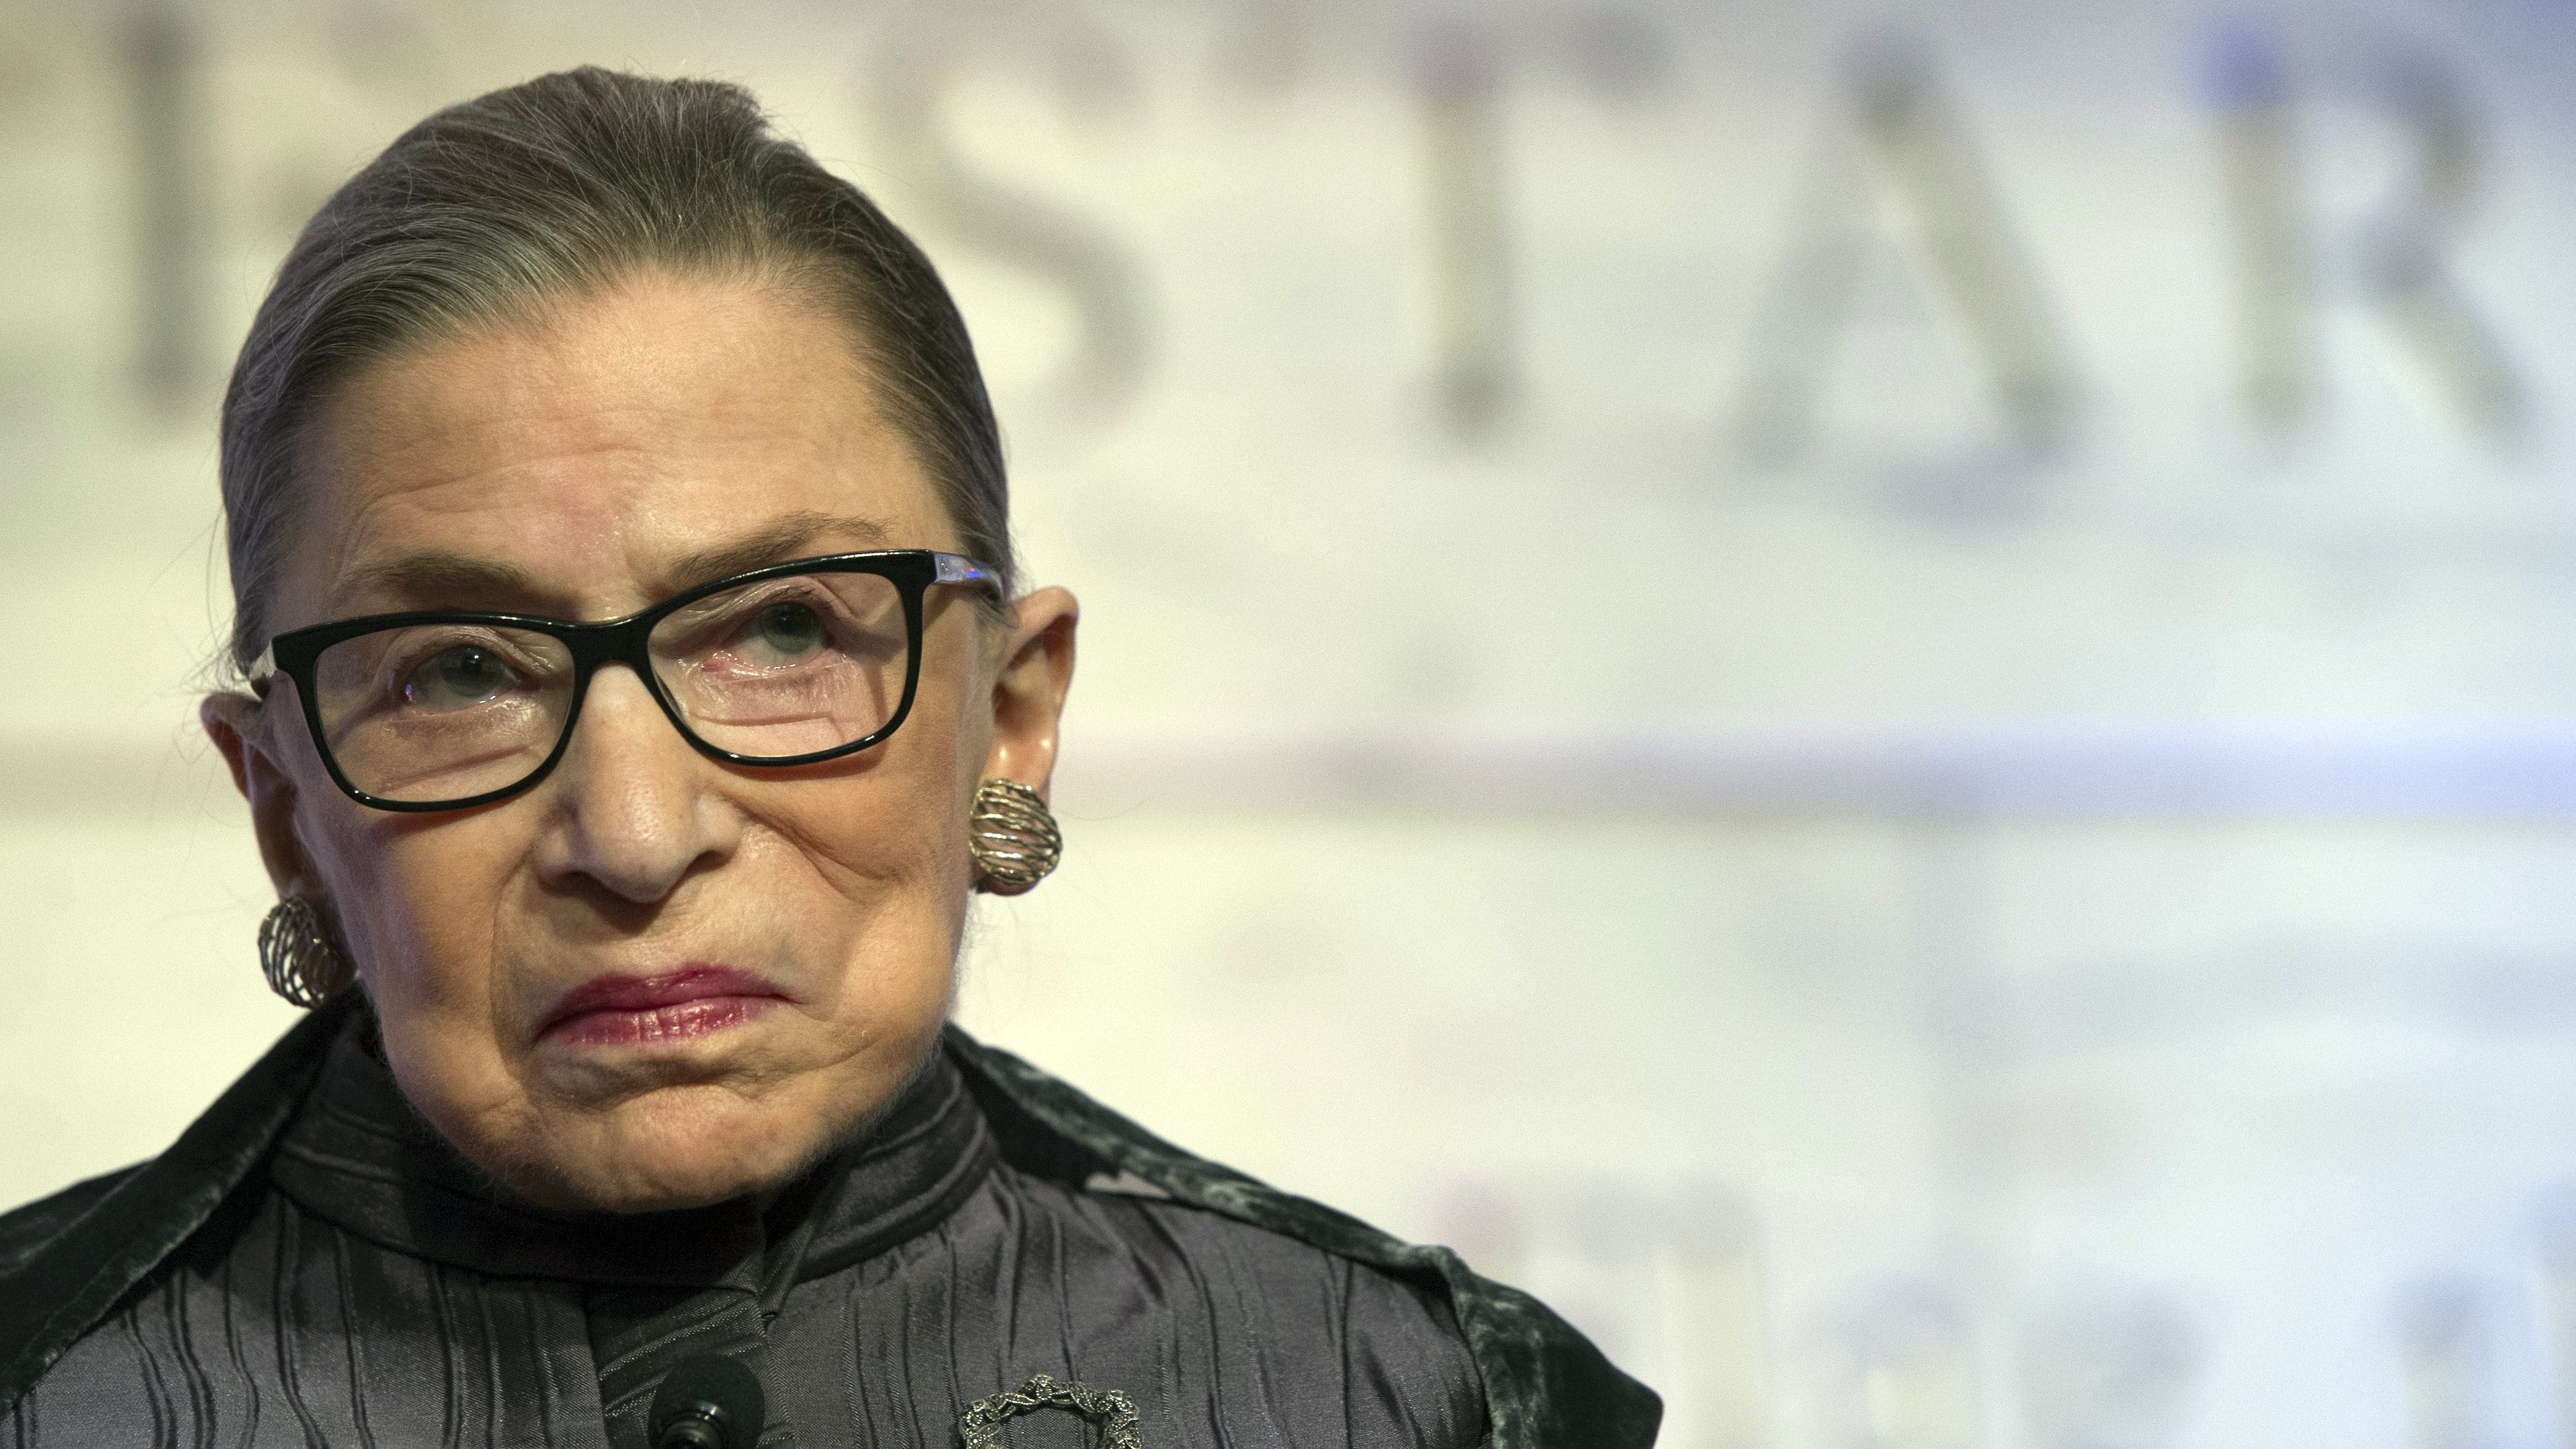 Supreme Court Justices Ruth Bader Ginsburg discusses the food traditions of the Supreme Court at the Smithsonian Museum of American History in Washington, Wednesday, June 1, 2016.